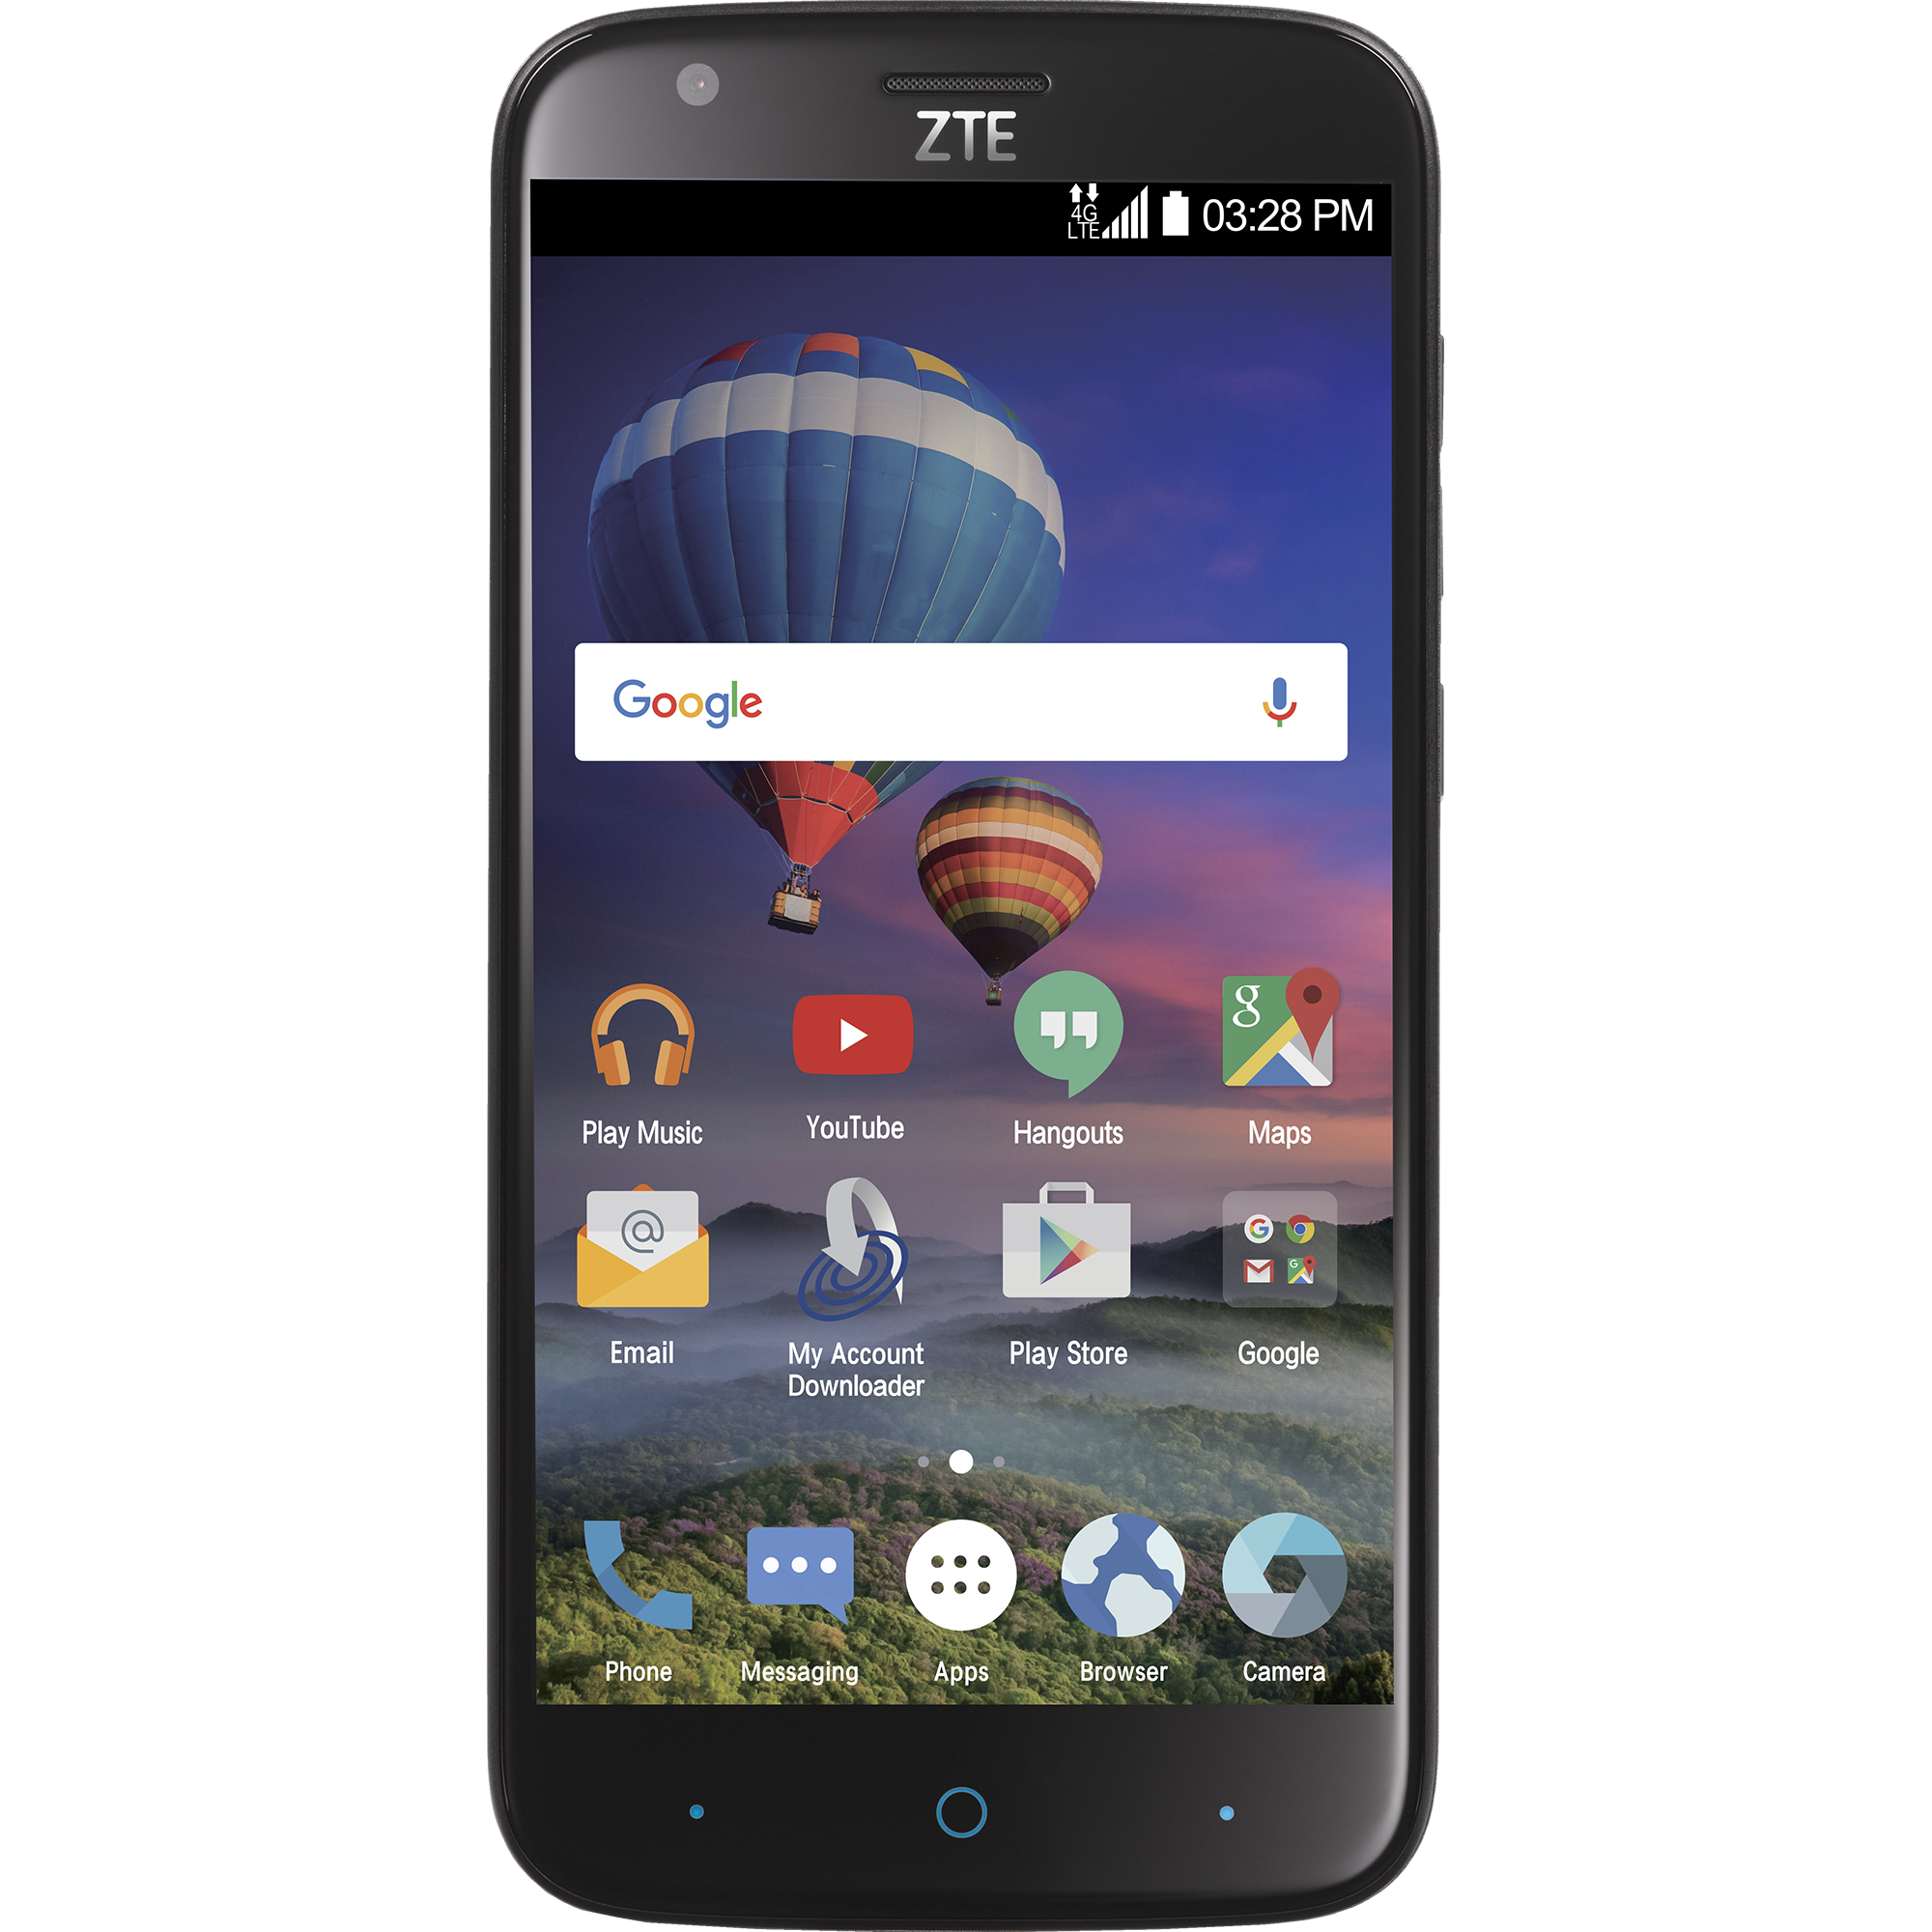 Total Wireless Zte Zmax Champ 4g Lte Prepaid Smartphone